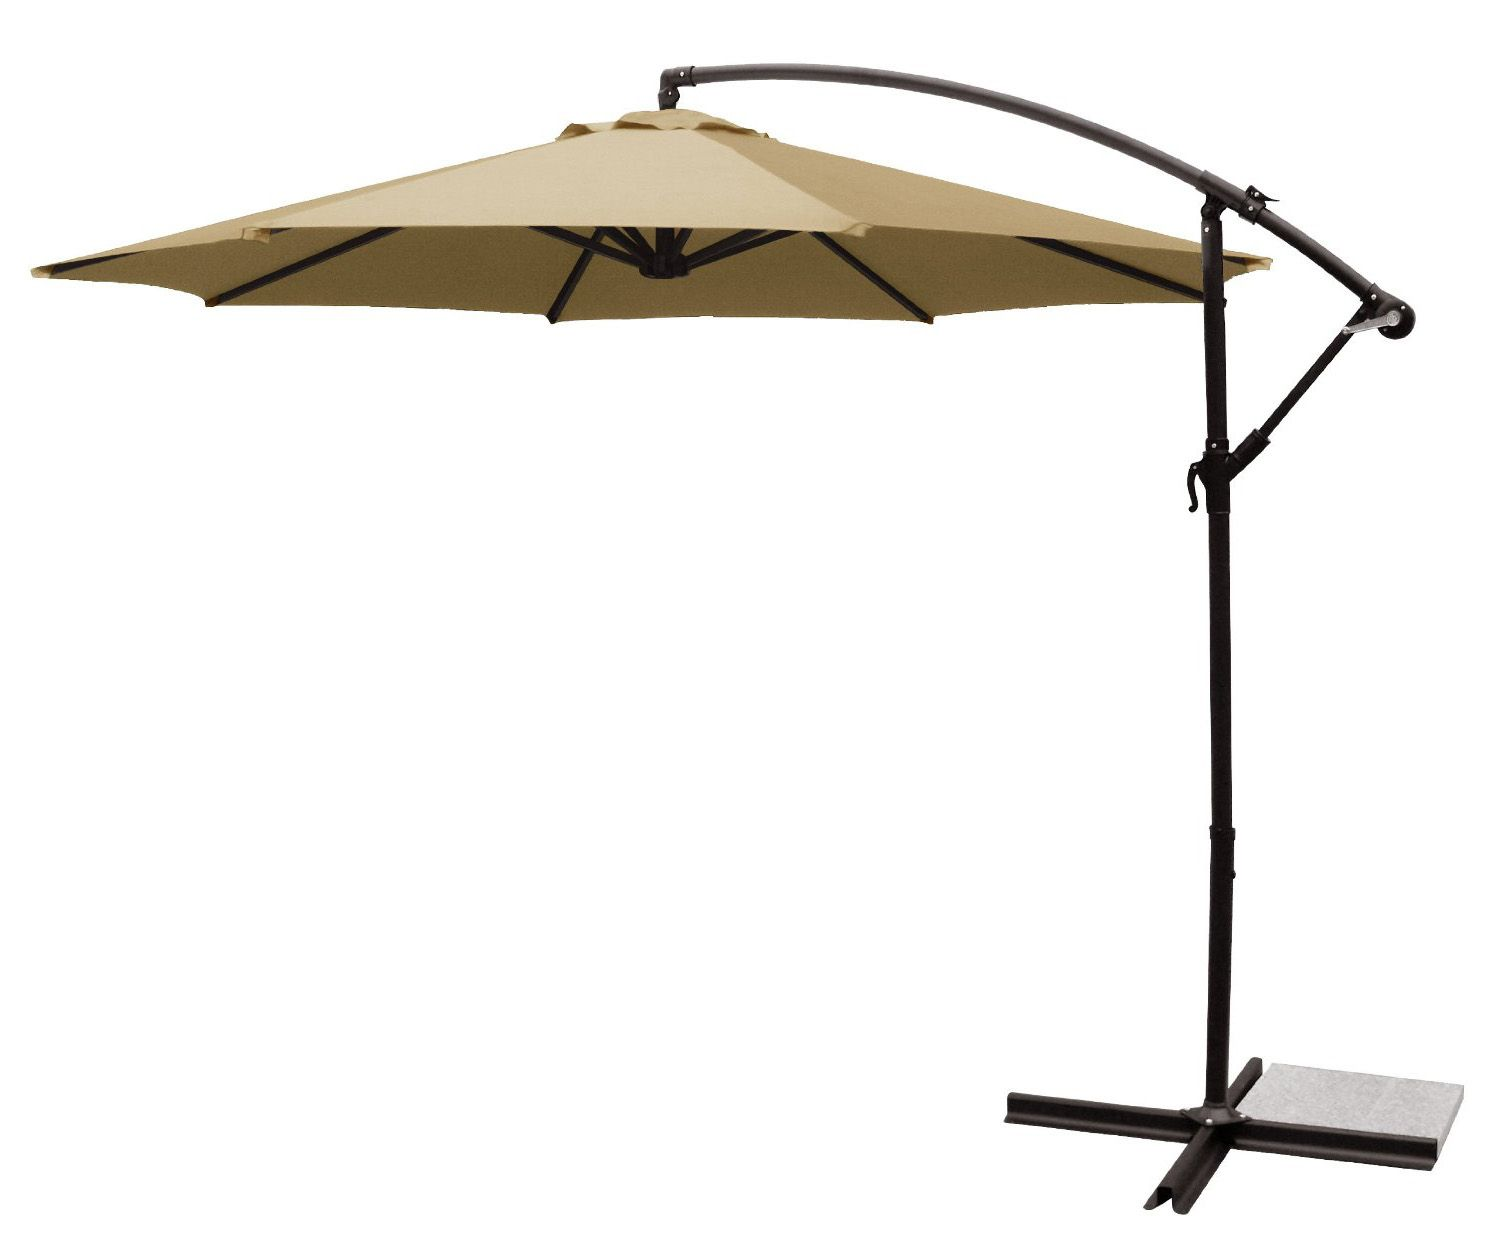 Patio Umbrellas | Patio Umbrellas Lowes